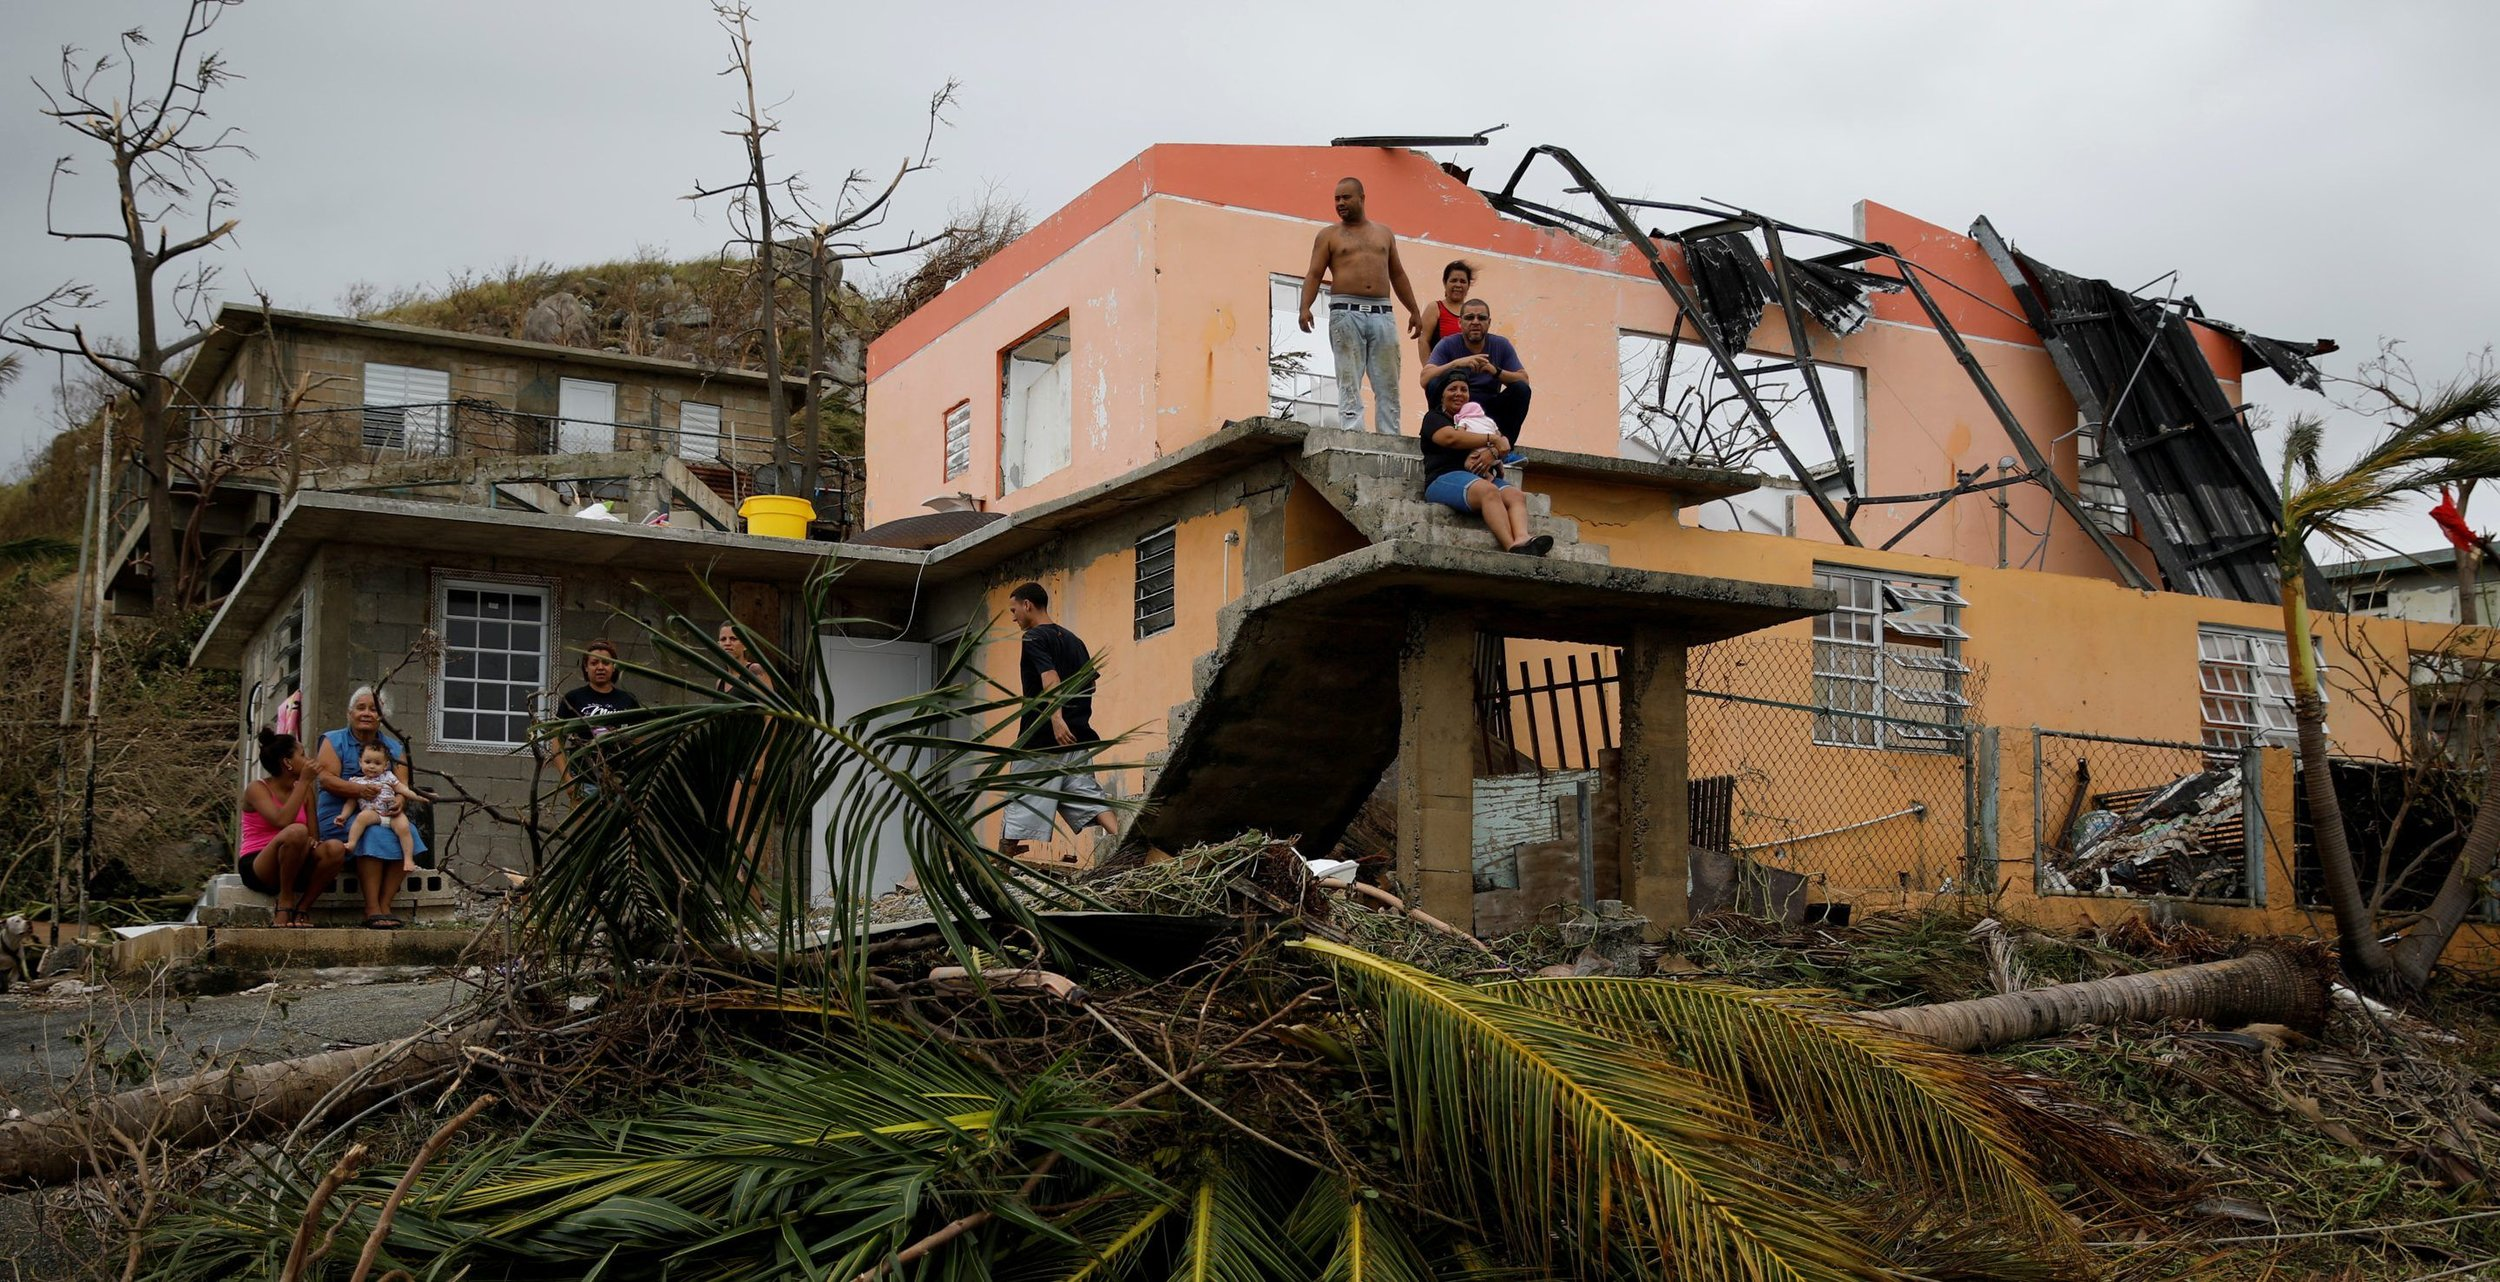 People rest outside a damaged house after the area was hit by Hurricane Maria in Yabucoa.